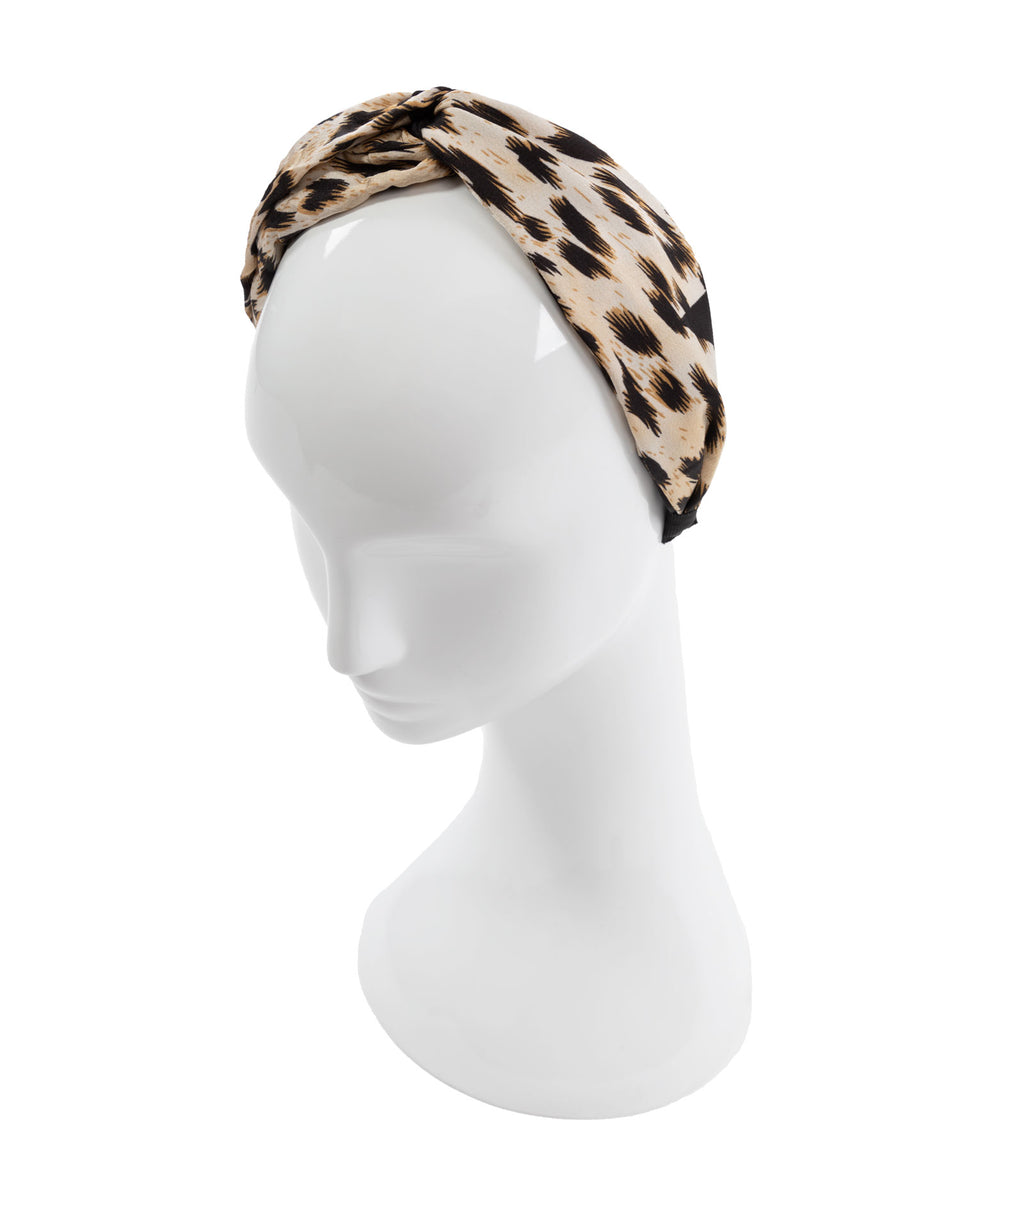 Fashionista J Cheetah Headband